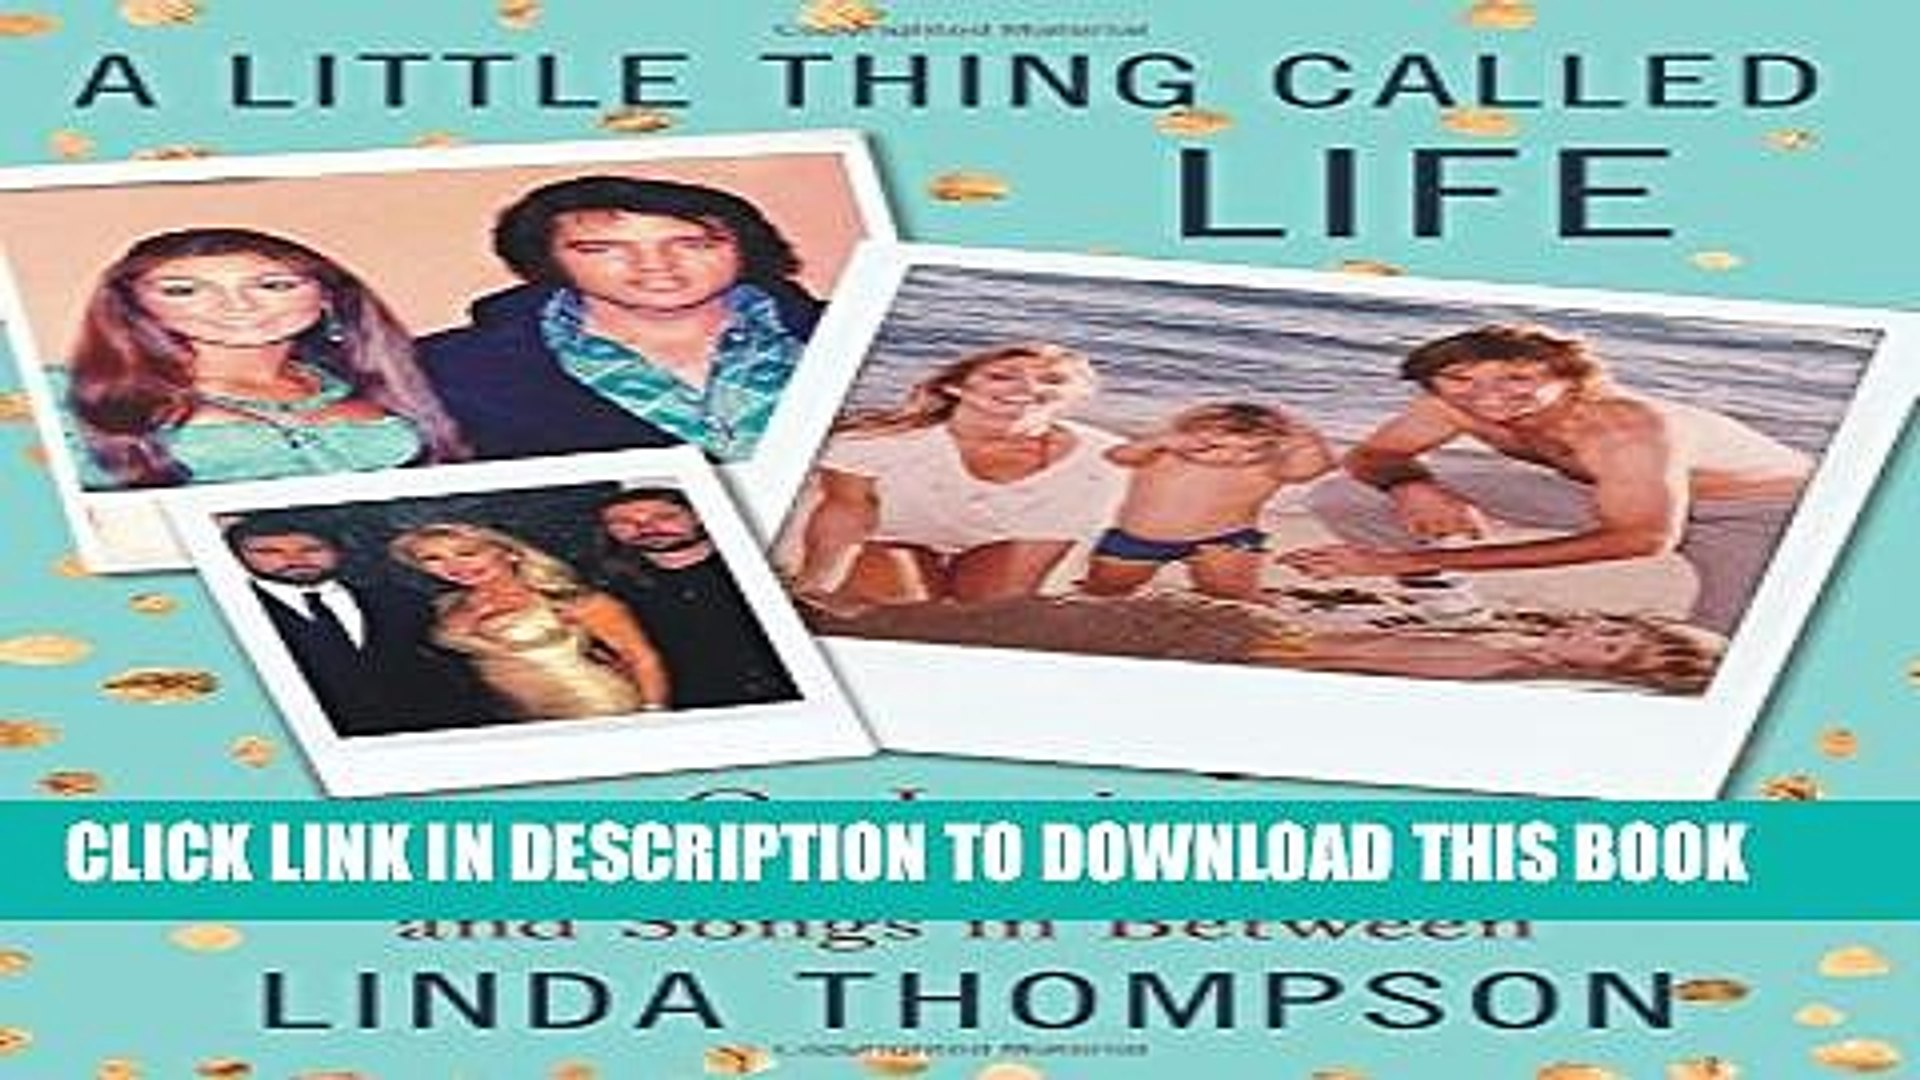 New Book A Little Thing Called Life: On Loving Elvis Presley, Bruce Jenner, and Songs in Between